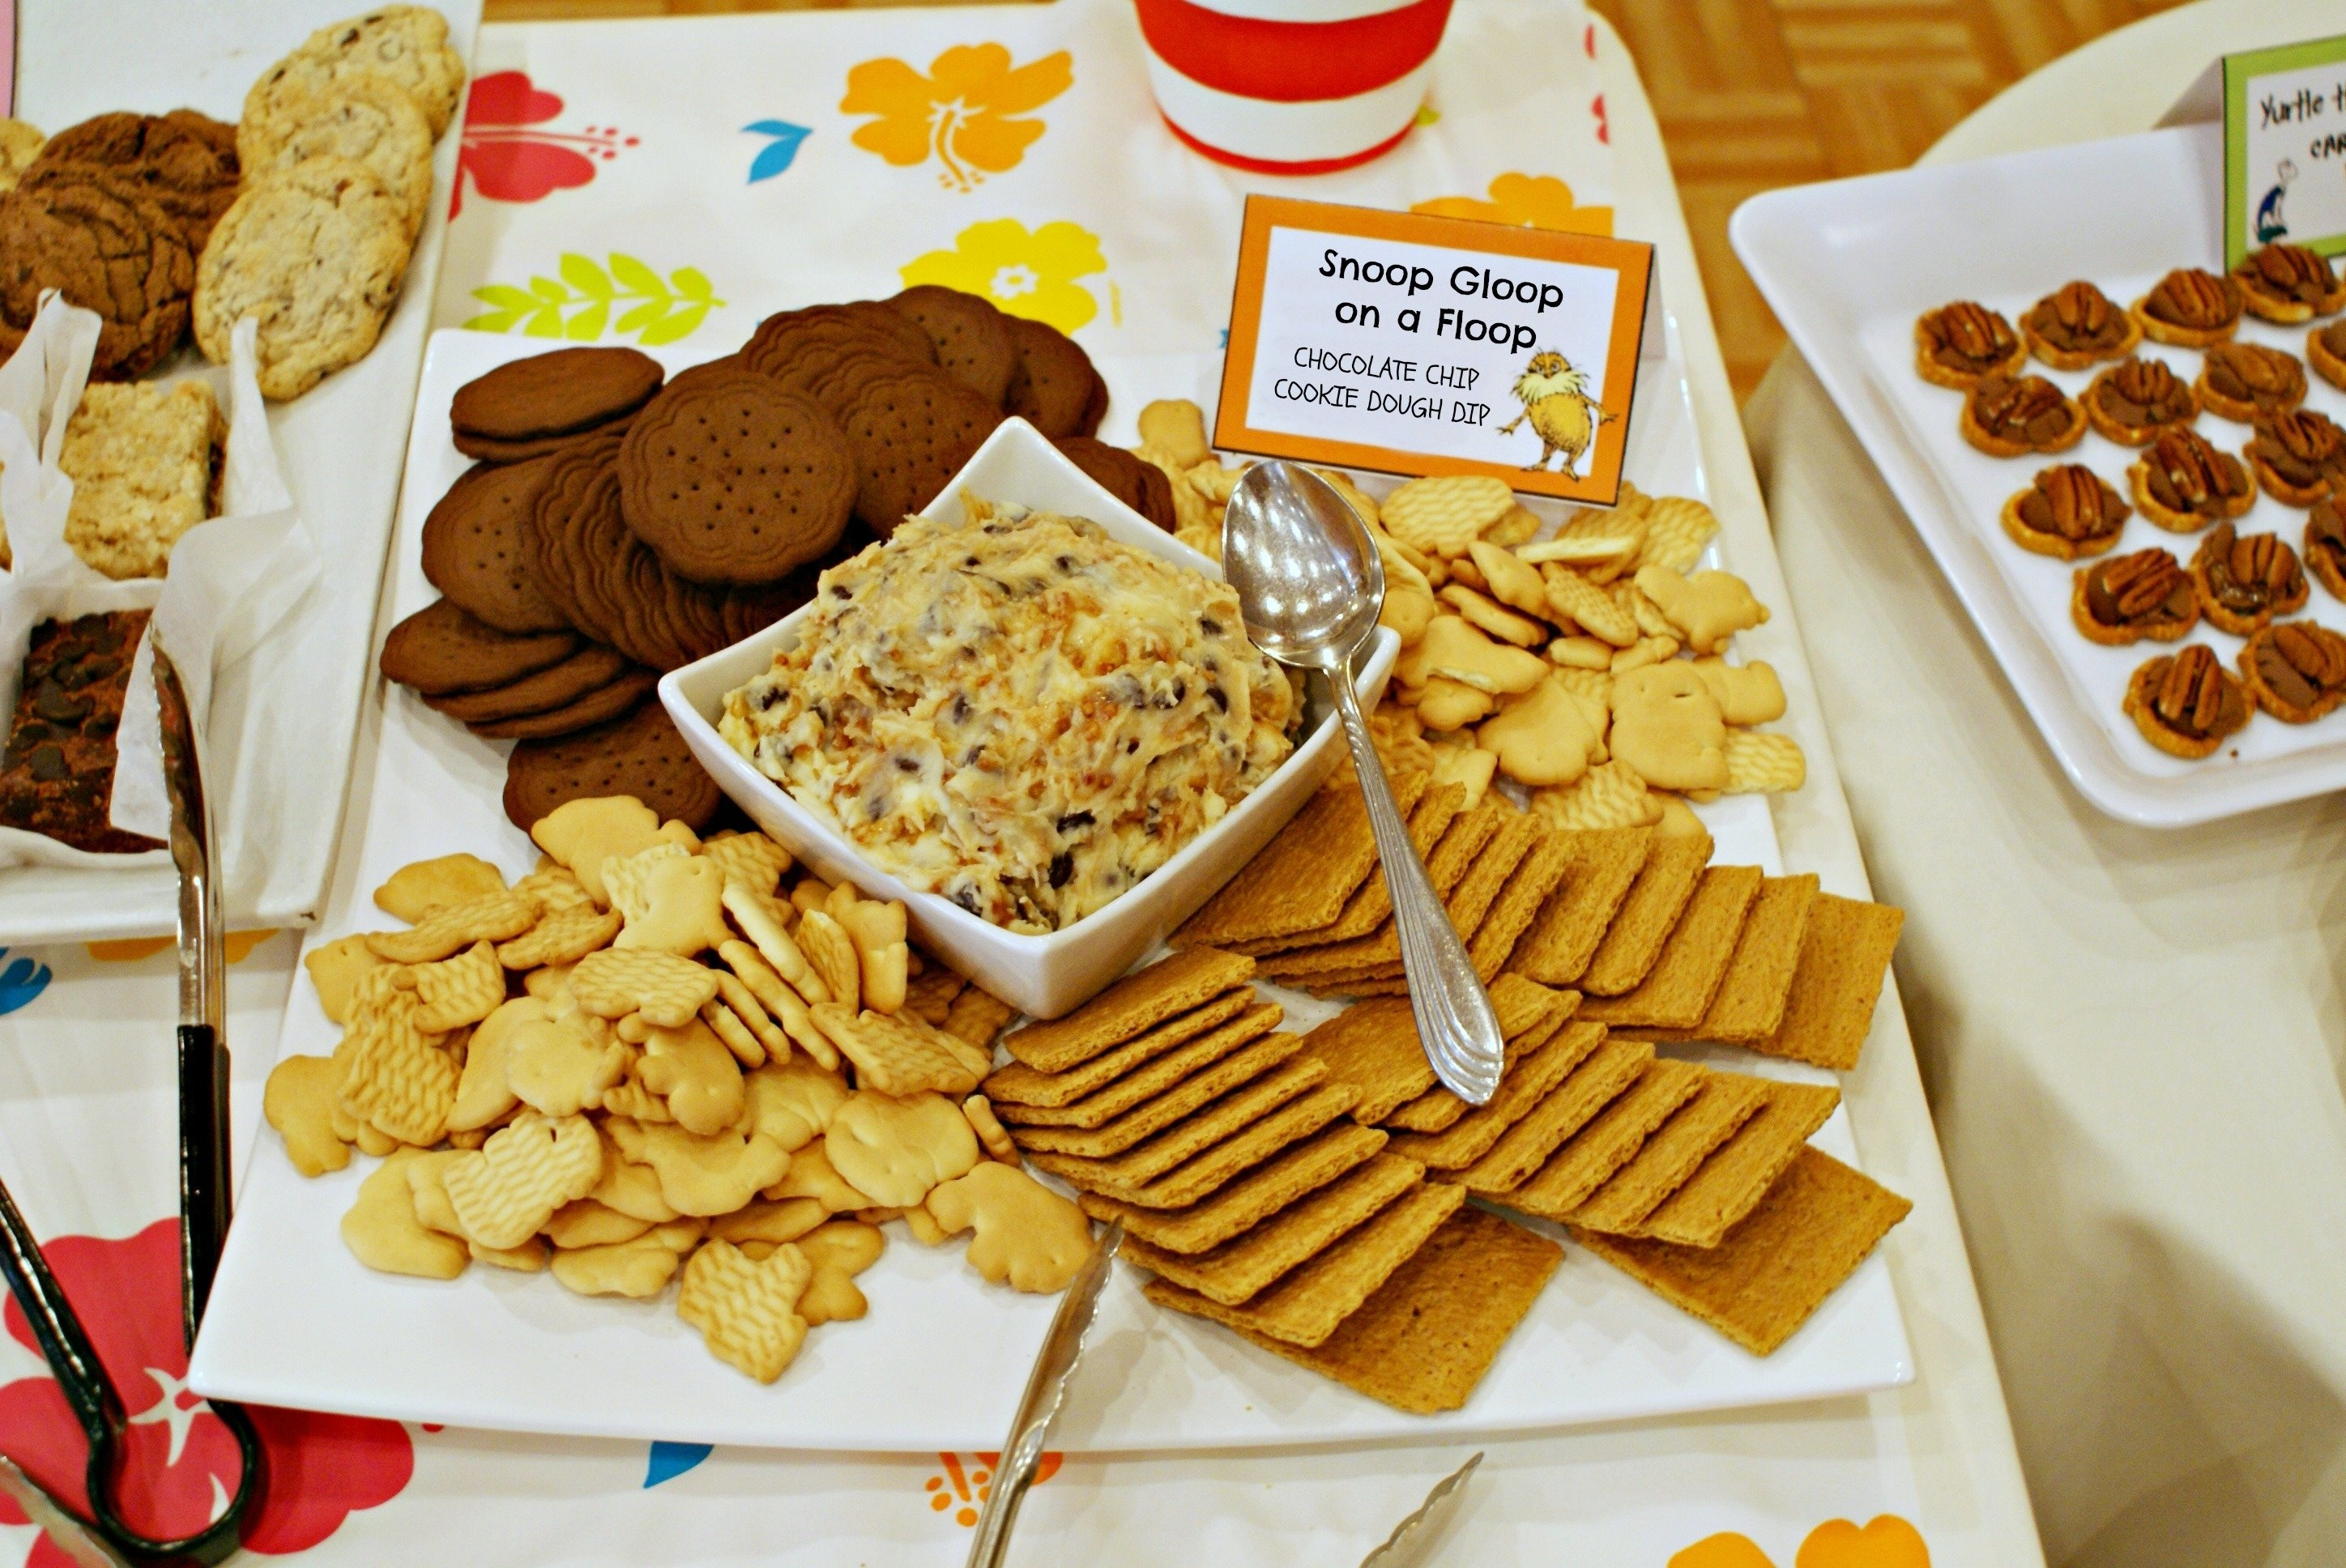 10 Unique Dr Seuss Baby Shower Food Ideas dr seuss themed baby shower the cheeky mama 2020